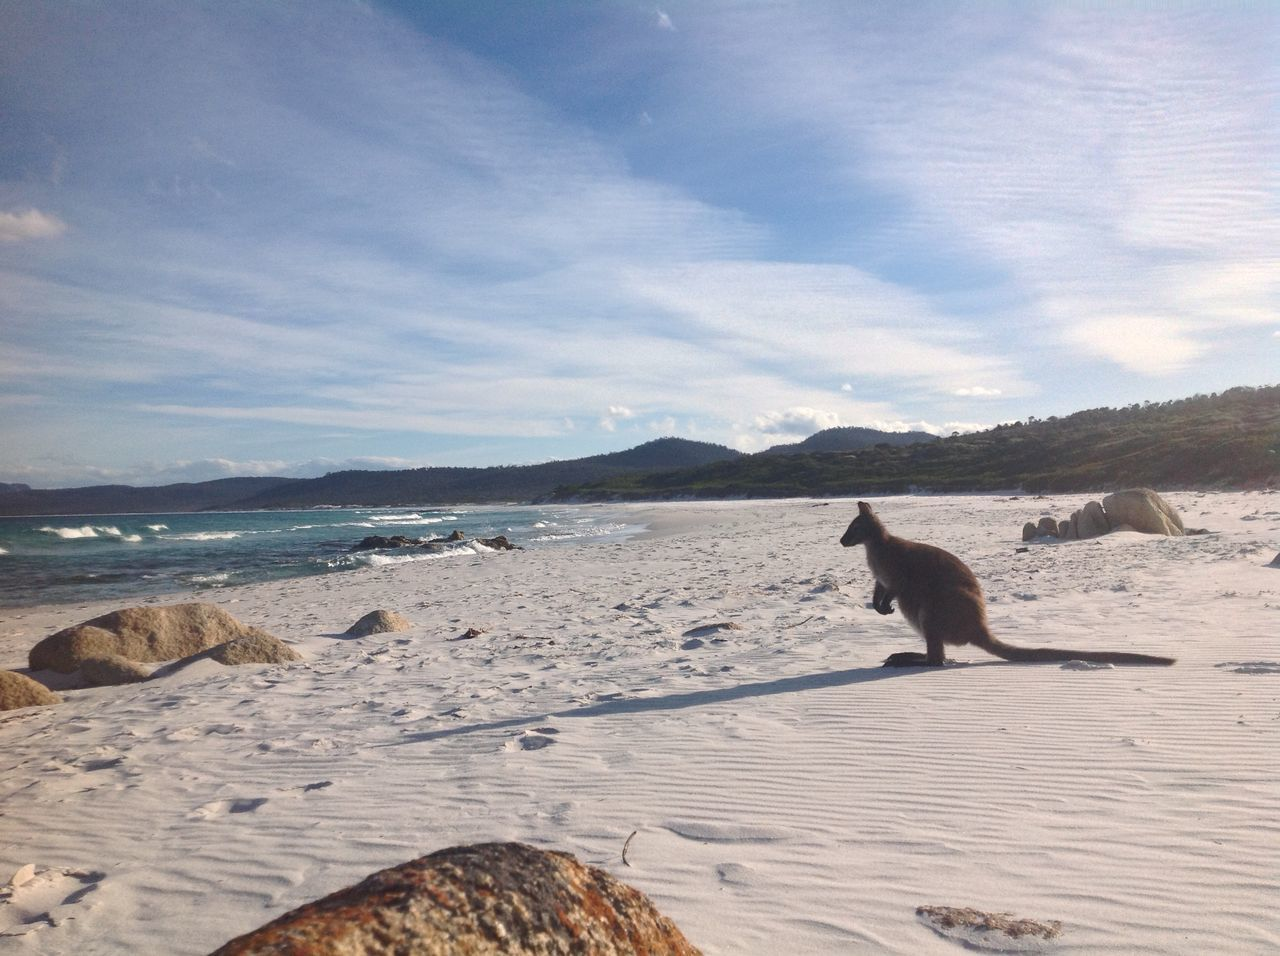 Animal Themes Beach Day Holiday Kangeroo Nature No People One Animal Outdoors Sea Sky Sunshine ☀ Wave Wildlife Friendly Beaches Tasmania EyeEmNewHere